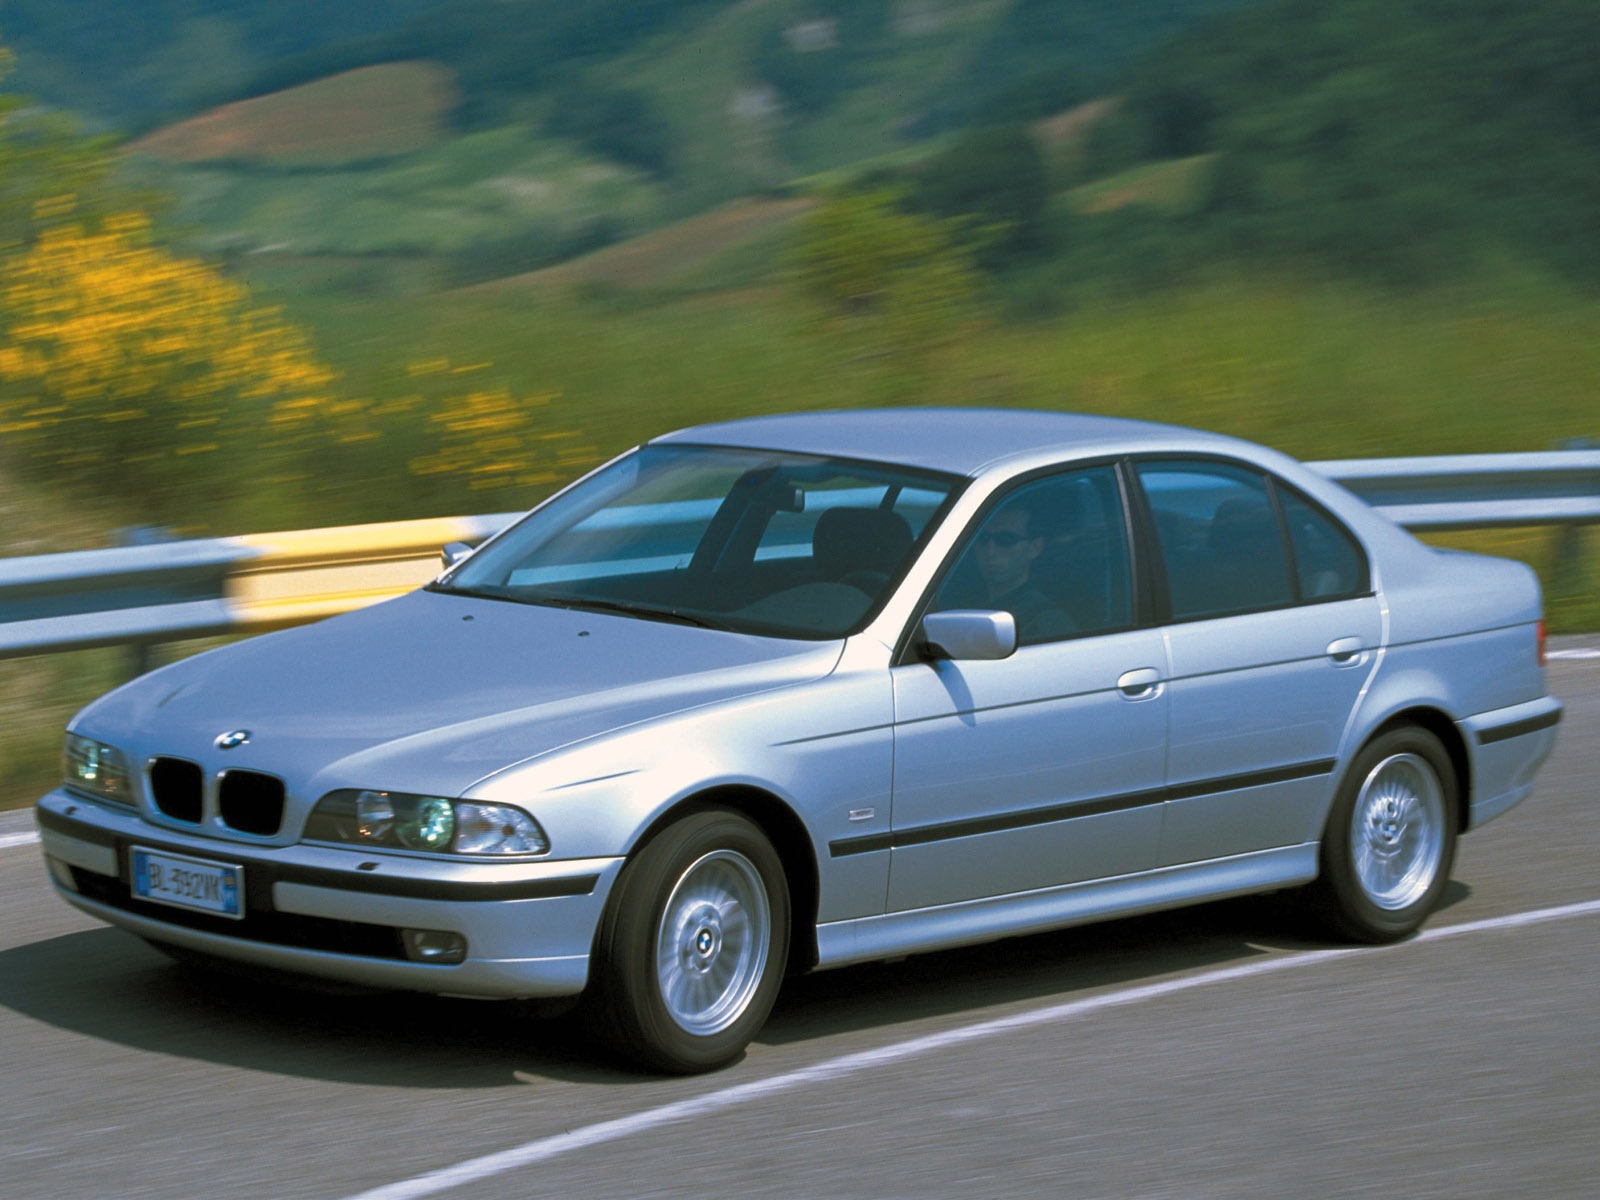 BMW 5 series 520d 2000 photo - 4